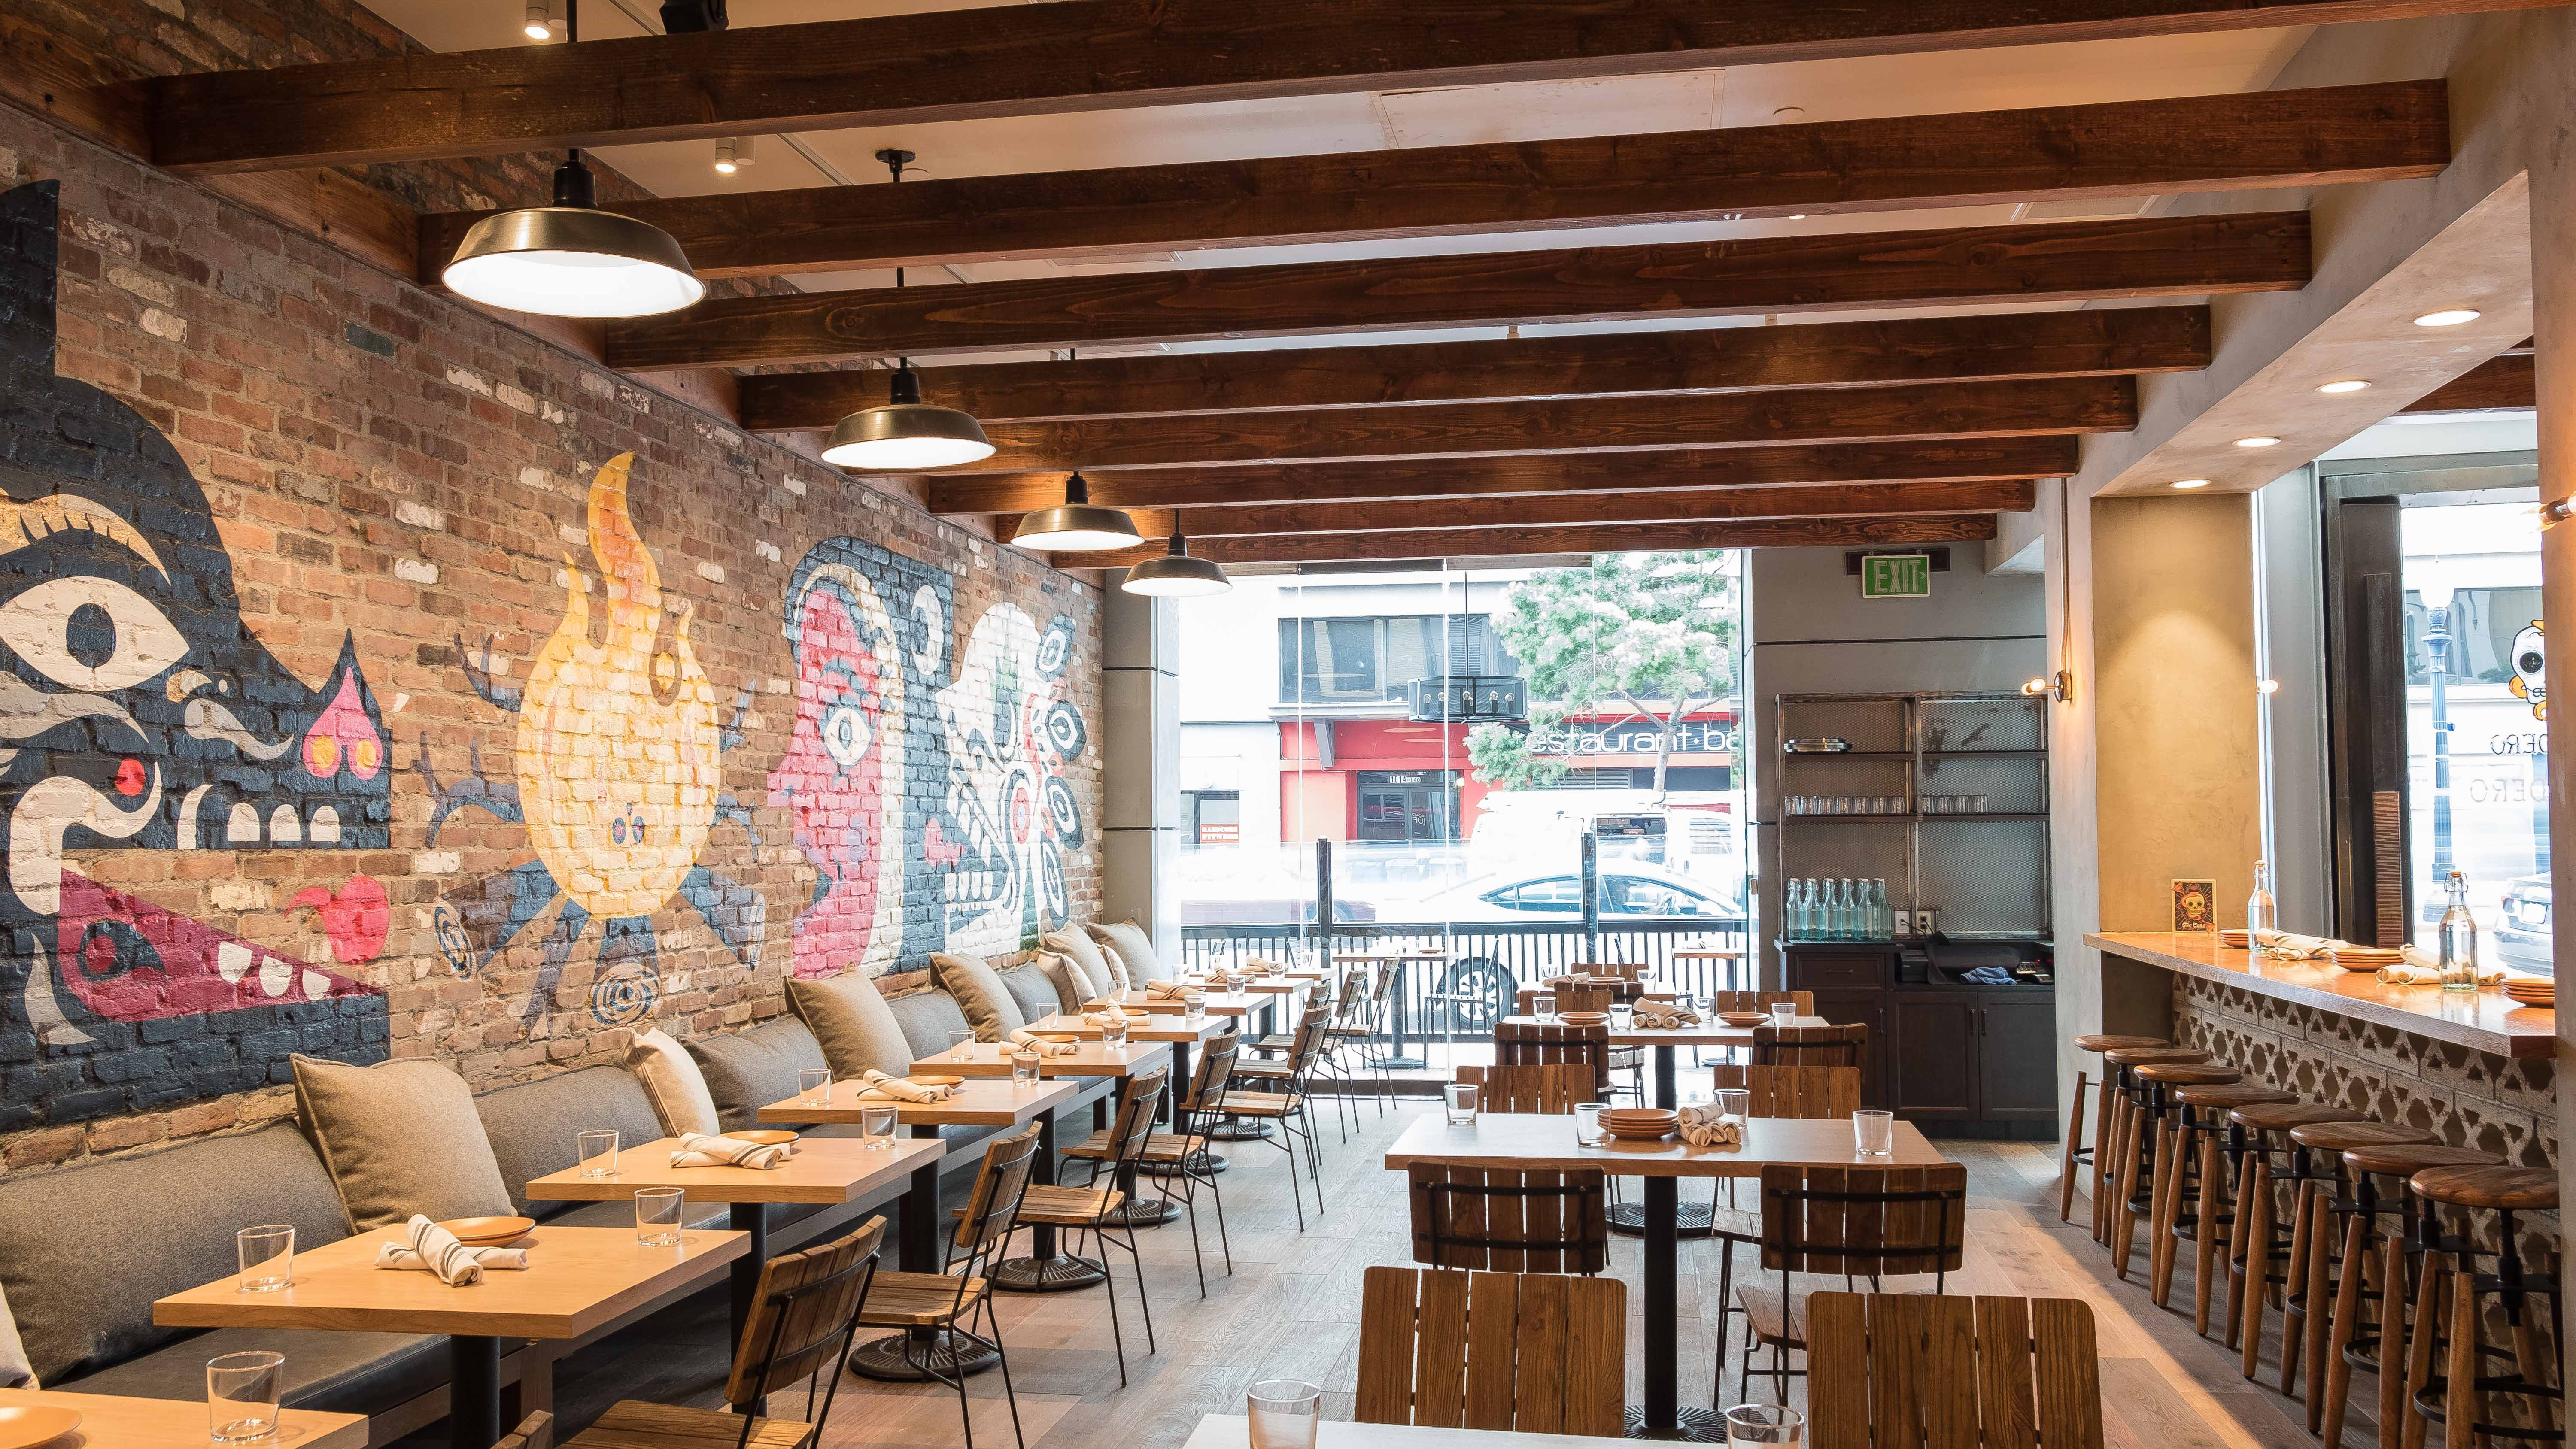 Coastal Mexican Kitchen Bar And Late Night Eatery Debut Downtown Eater San Diego